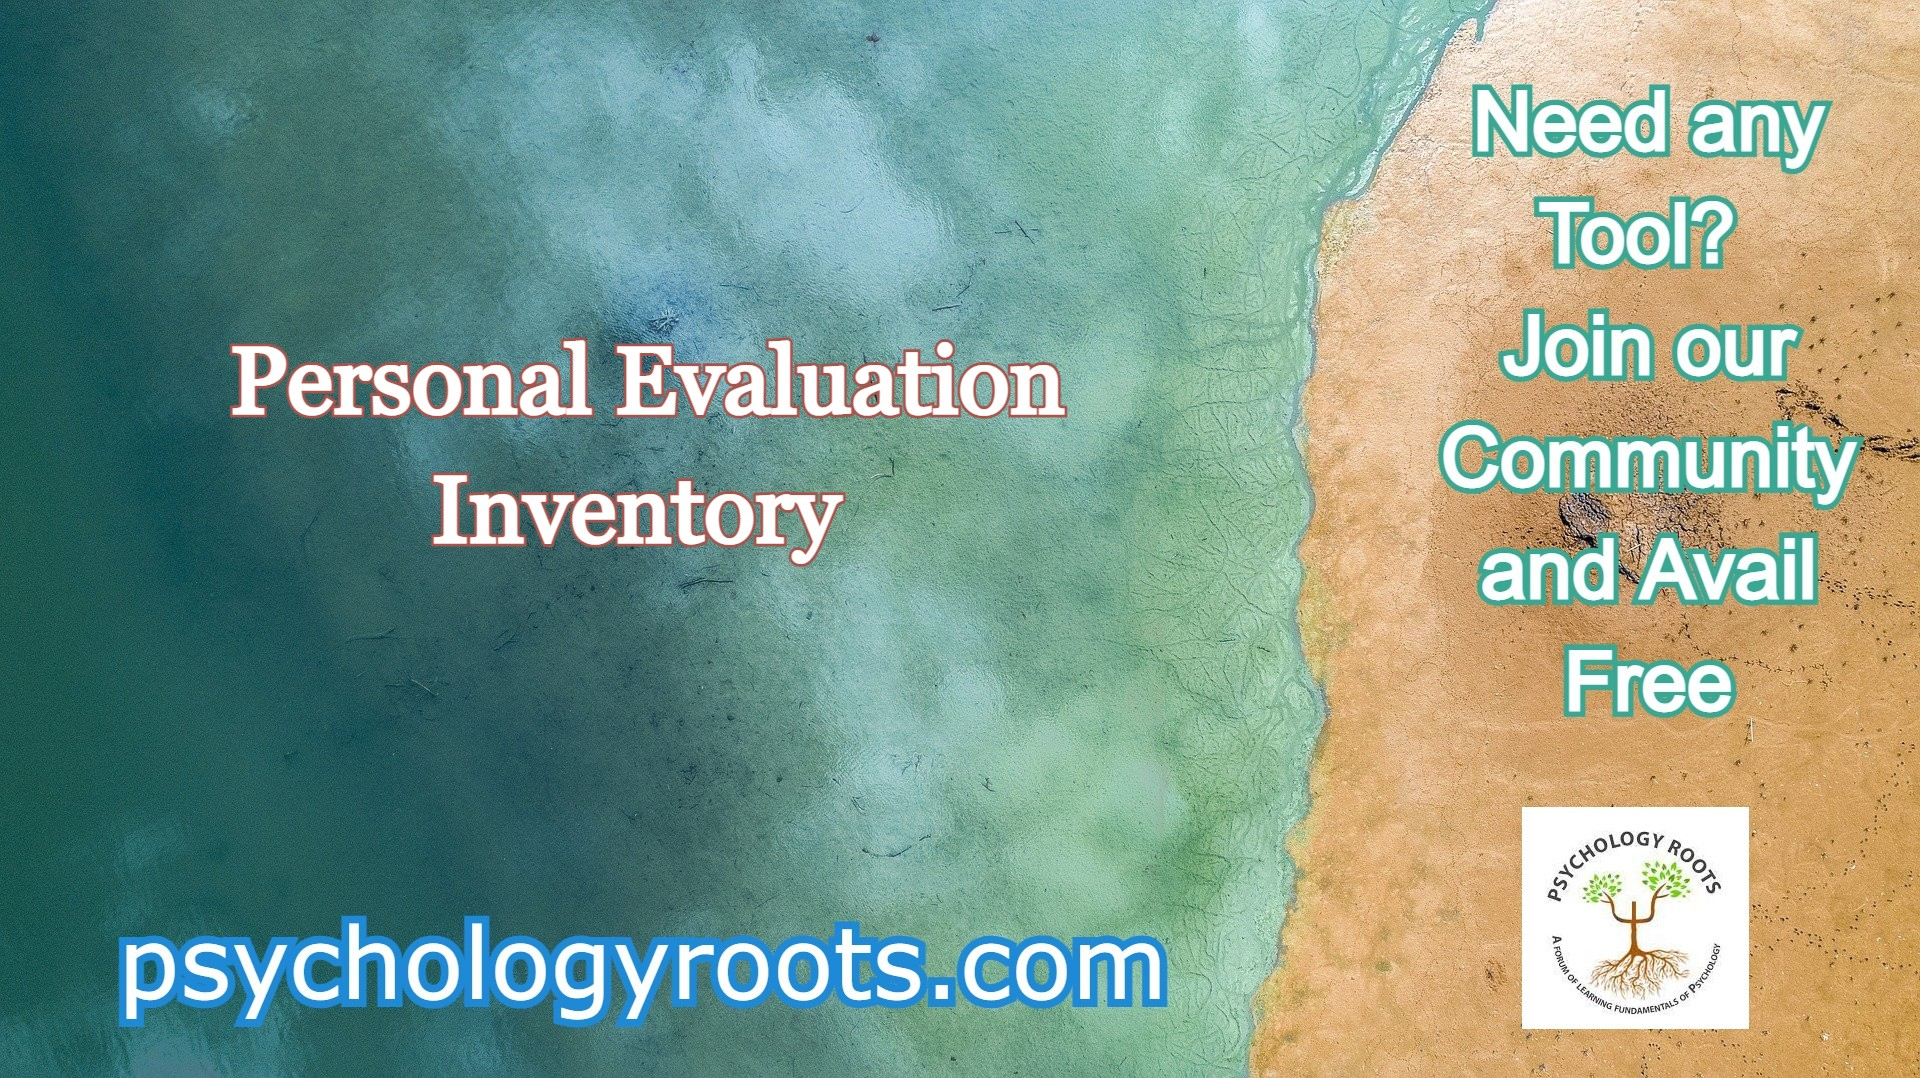 Personal Evaluation Inventory